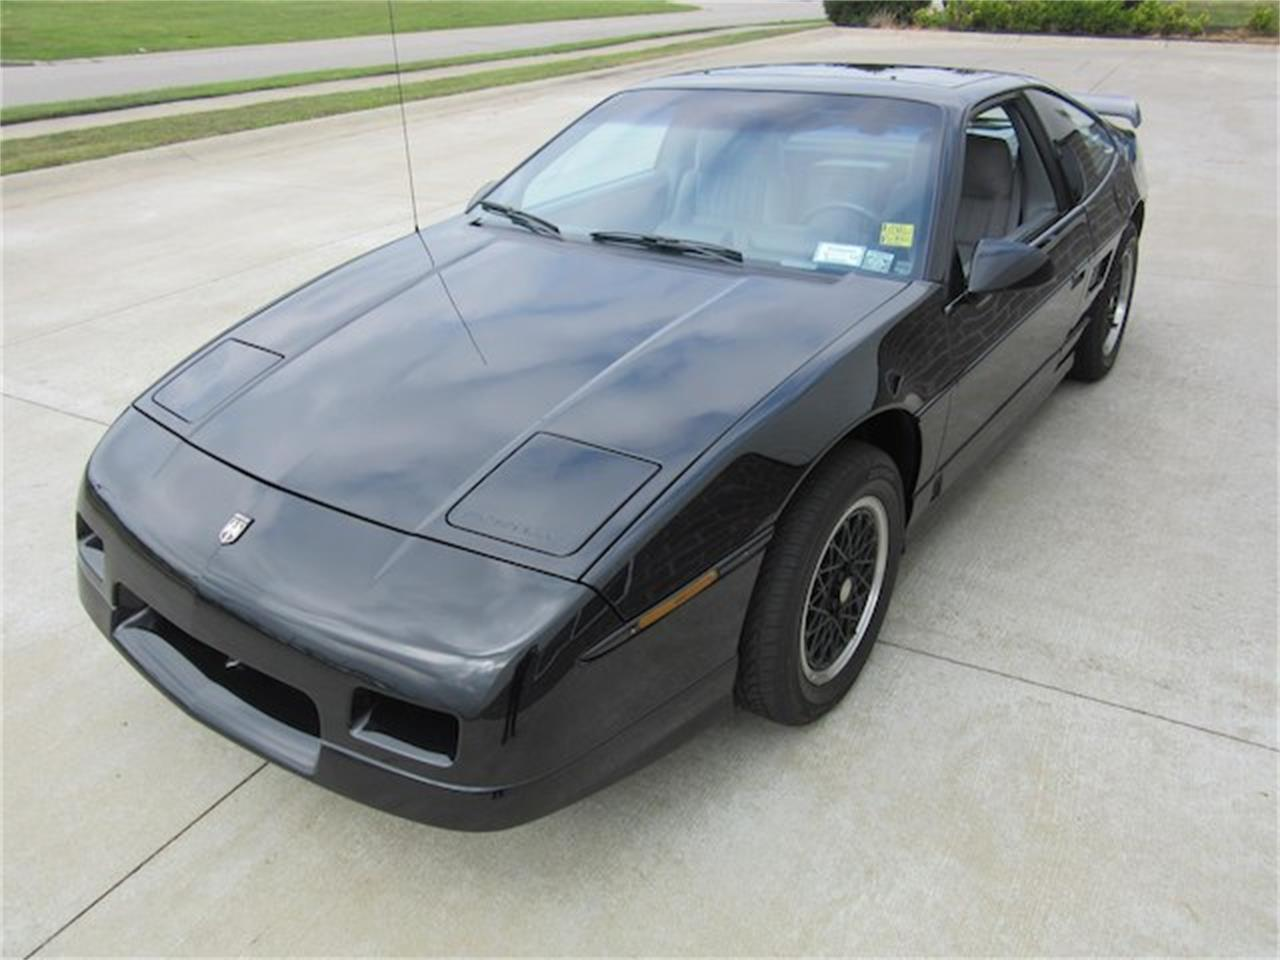 Large Picture of 1988 Pontiac Fiero - $15,900.00 Offered by Ray Skillman Classic Cars - NVQQ